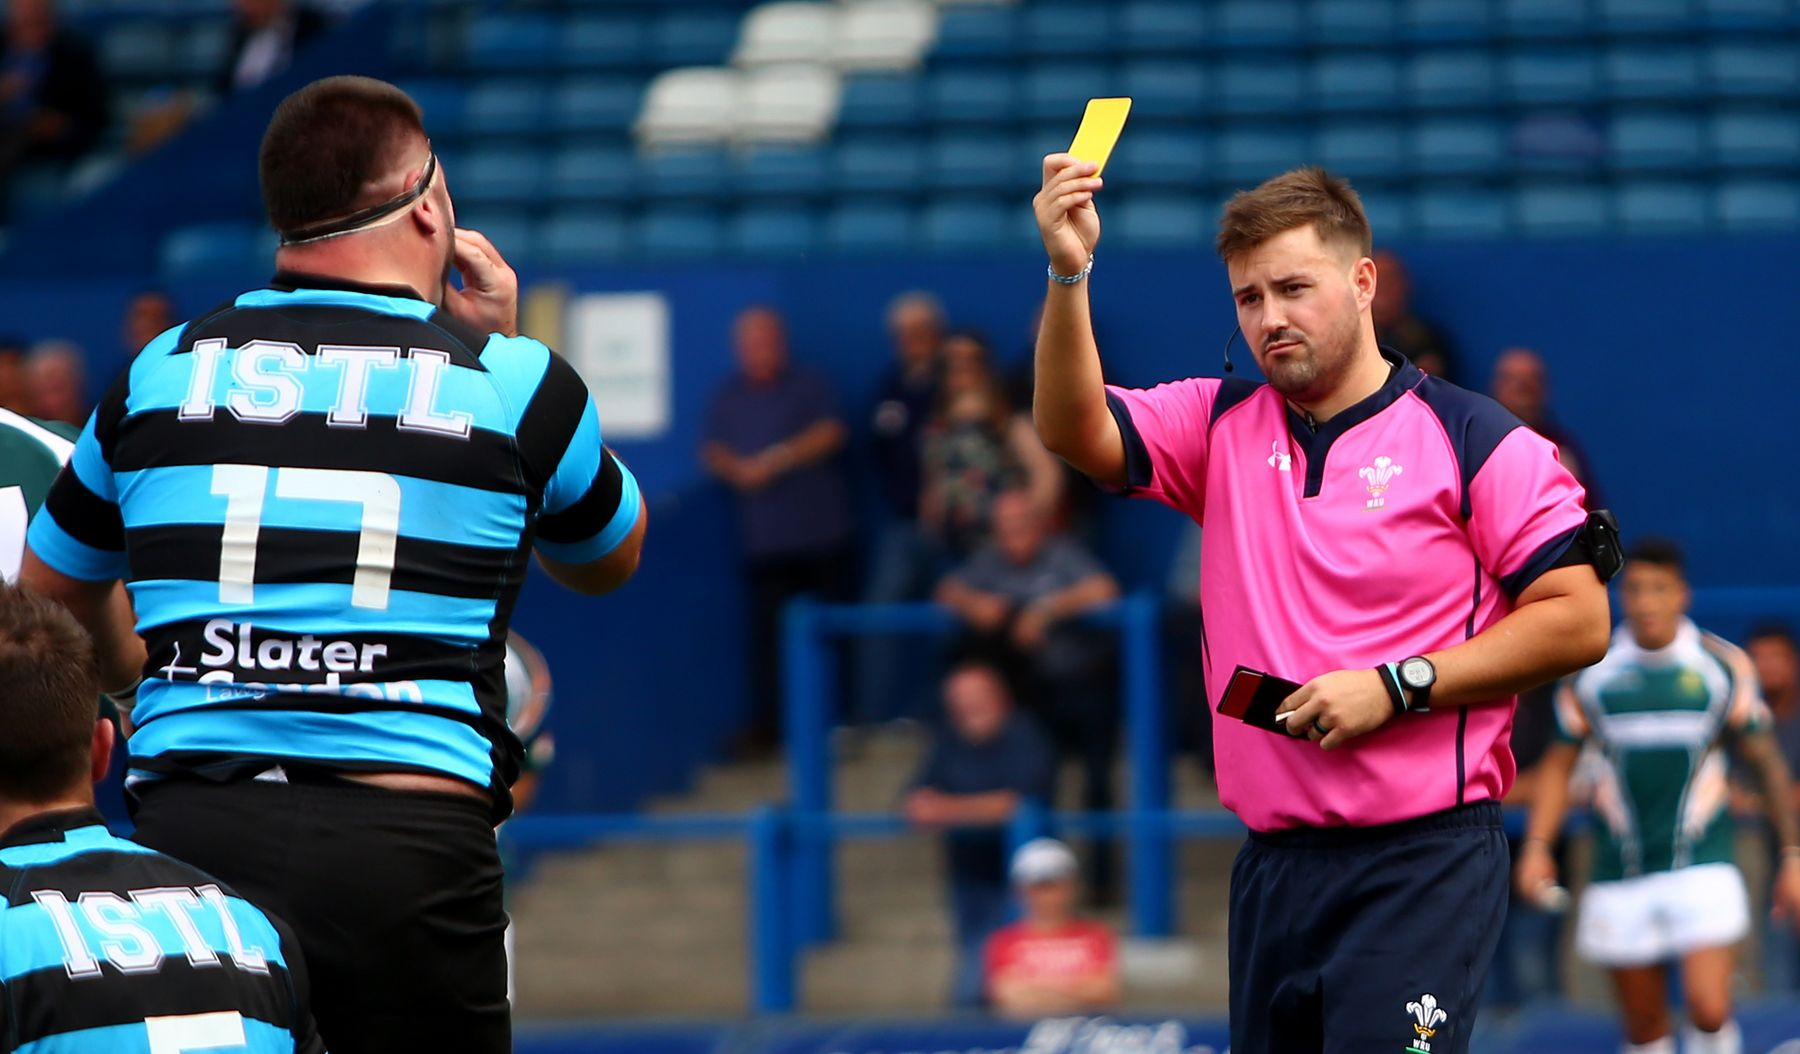 Ref appointments for October